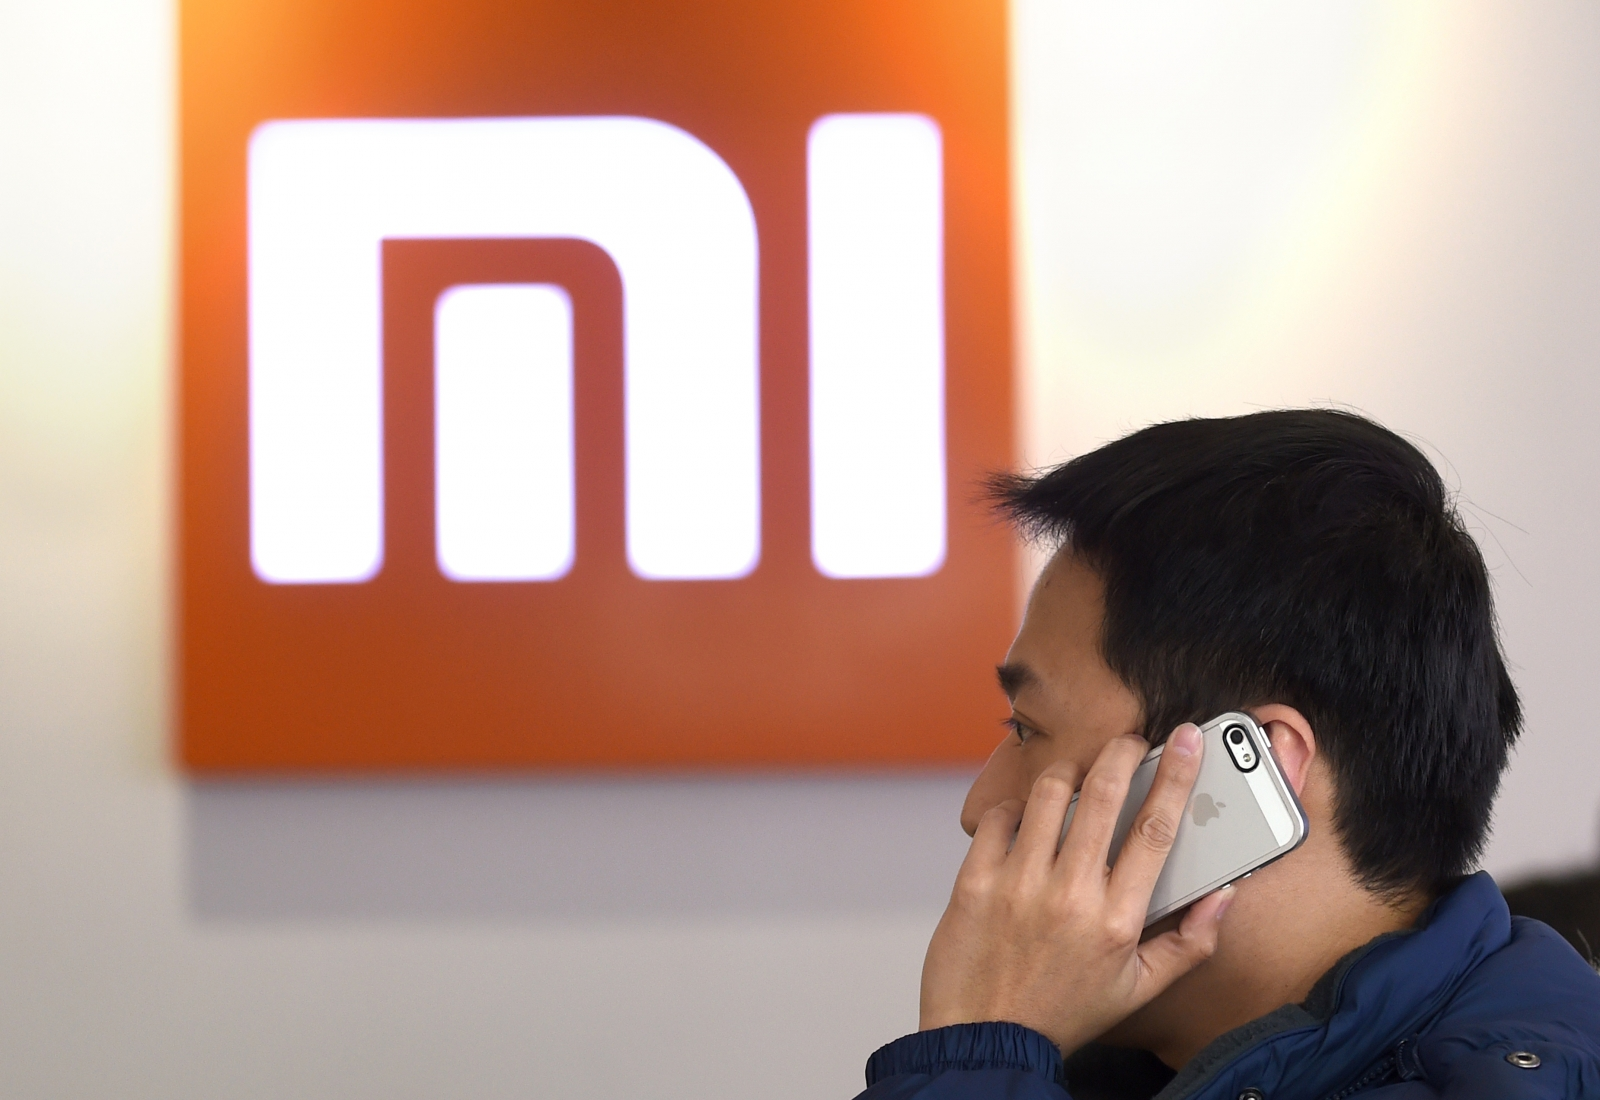 Xiaomi is working on the Mi MIX successor